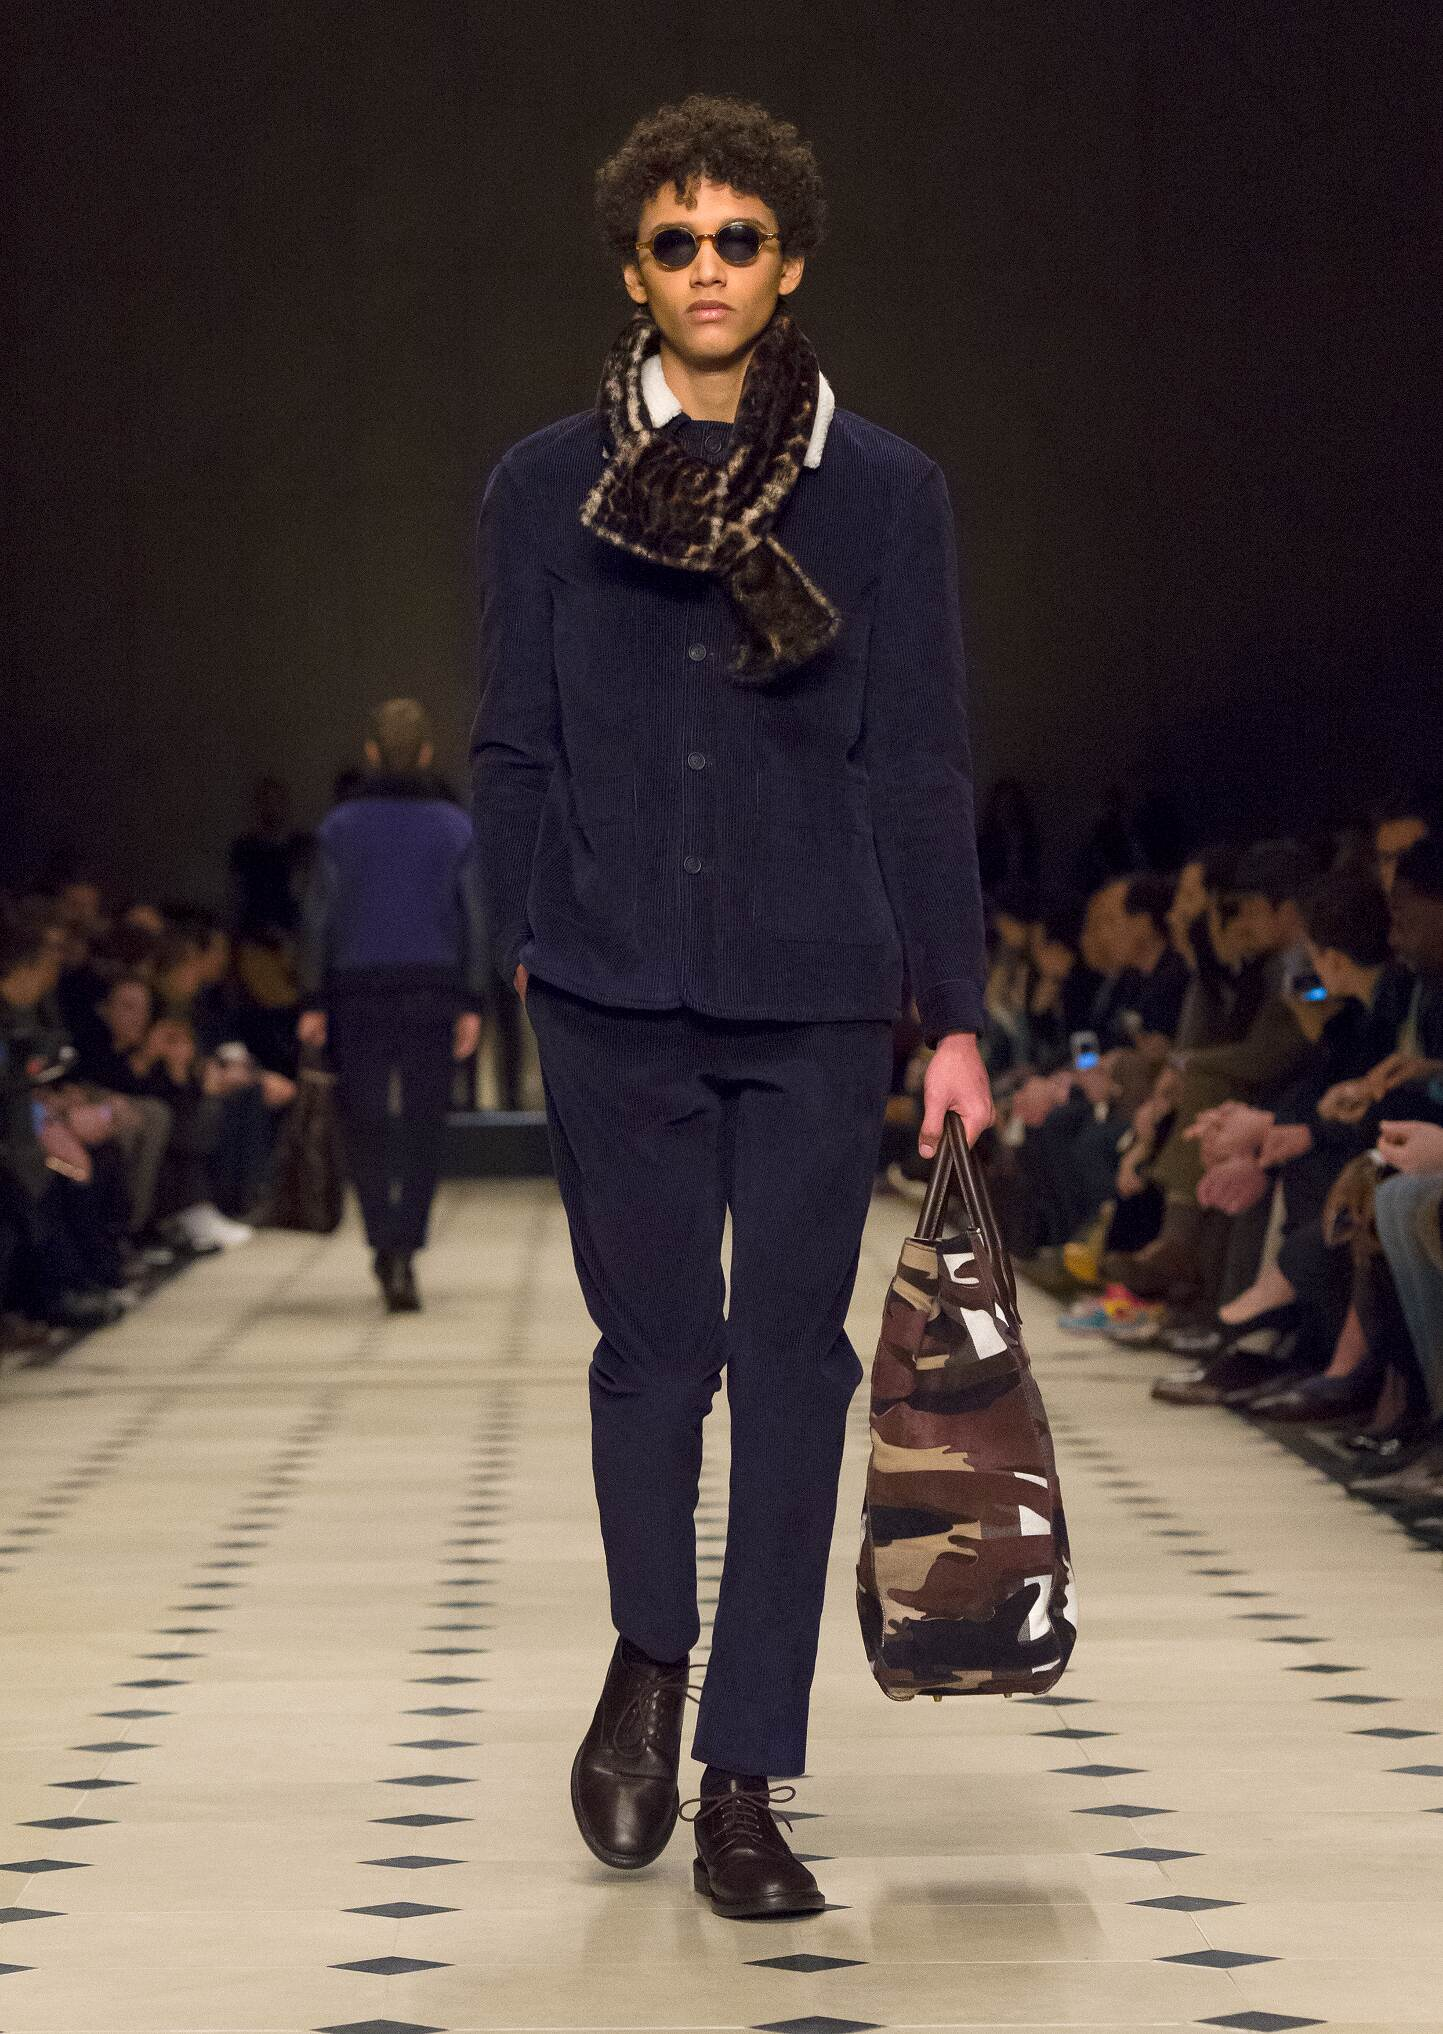 Fall Fashion 2015 Burberry Prorsum